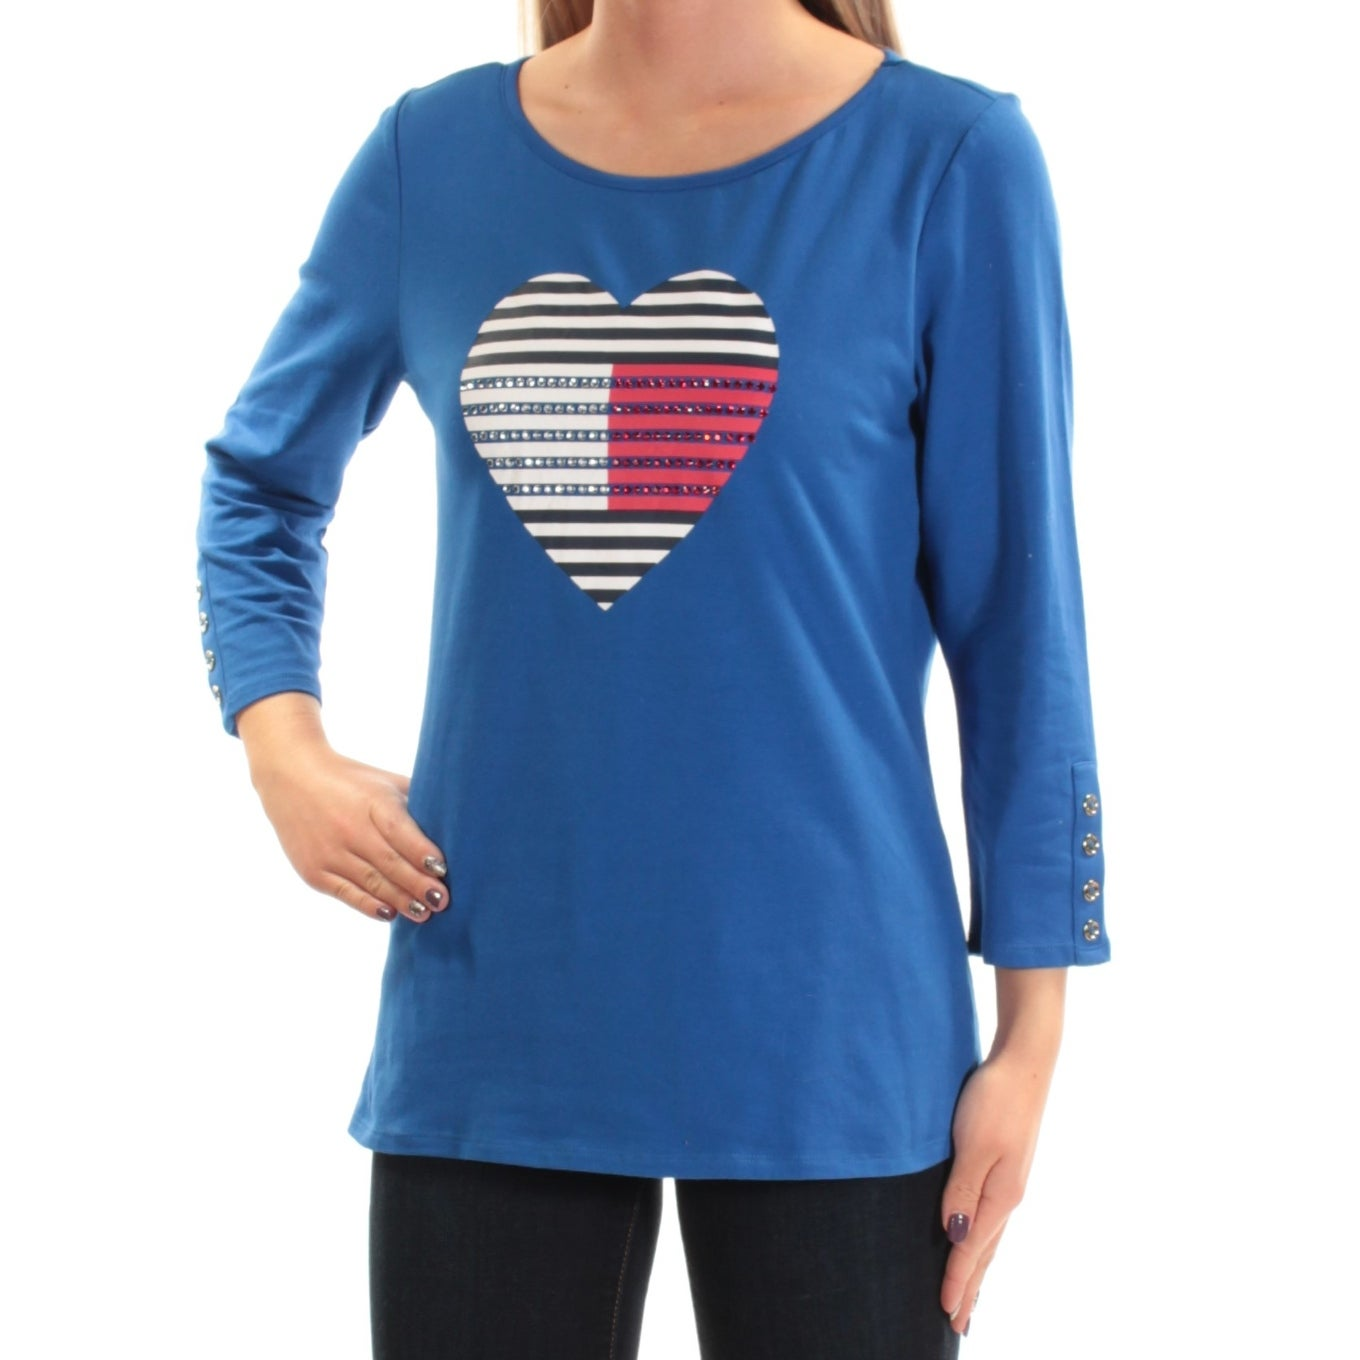 fb75a6eaa Shop TOMMY HILFIGER Womens Blue Rhinestone Heart Long Sleeve Scoop Neck Top  Size: S - On Sale - Free Shipping On Orders Over $45 - Overstock - 22430950